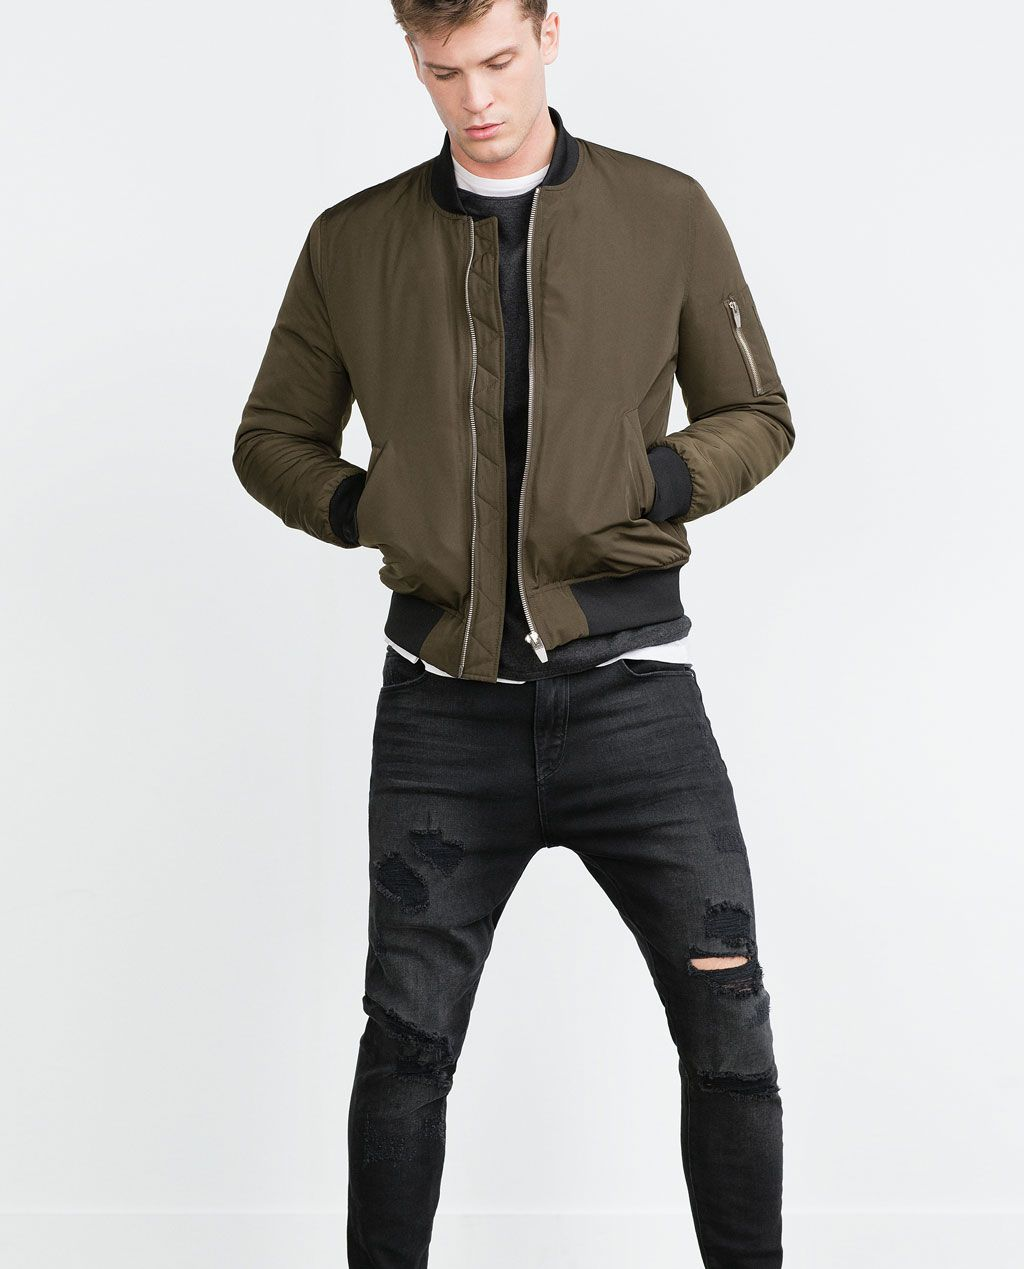 75e24ecce BOMBER JACKET METAL ZIP-View all-Jackets-MAN | ZARA United States ...